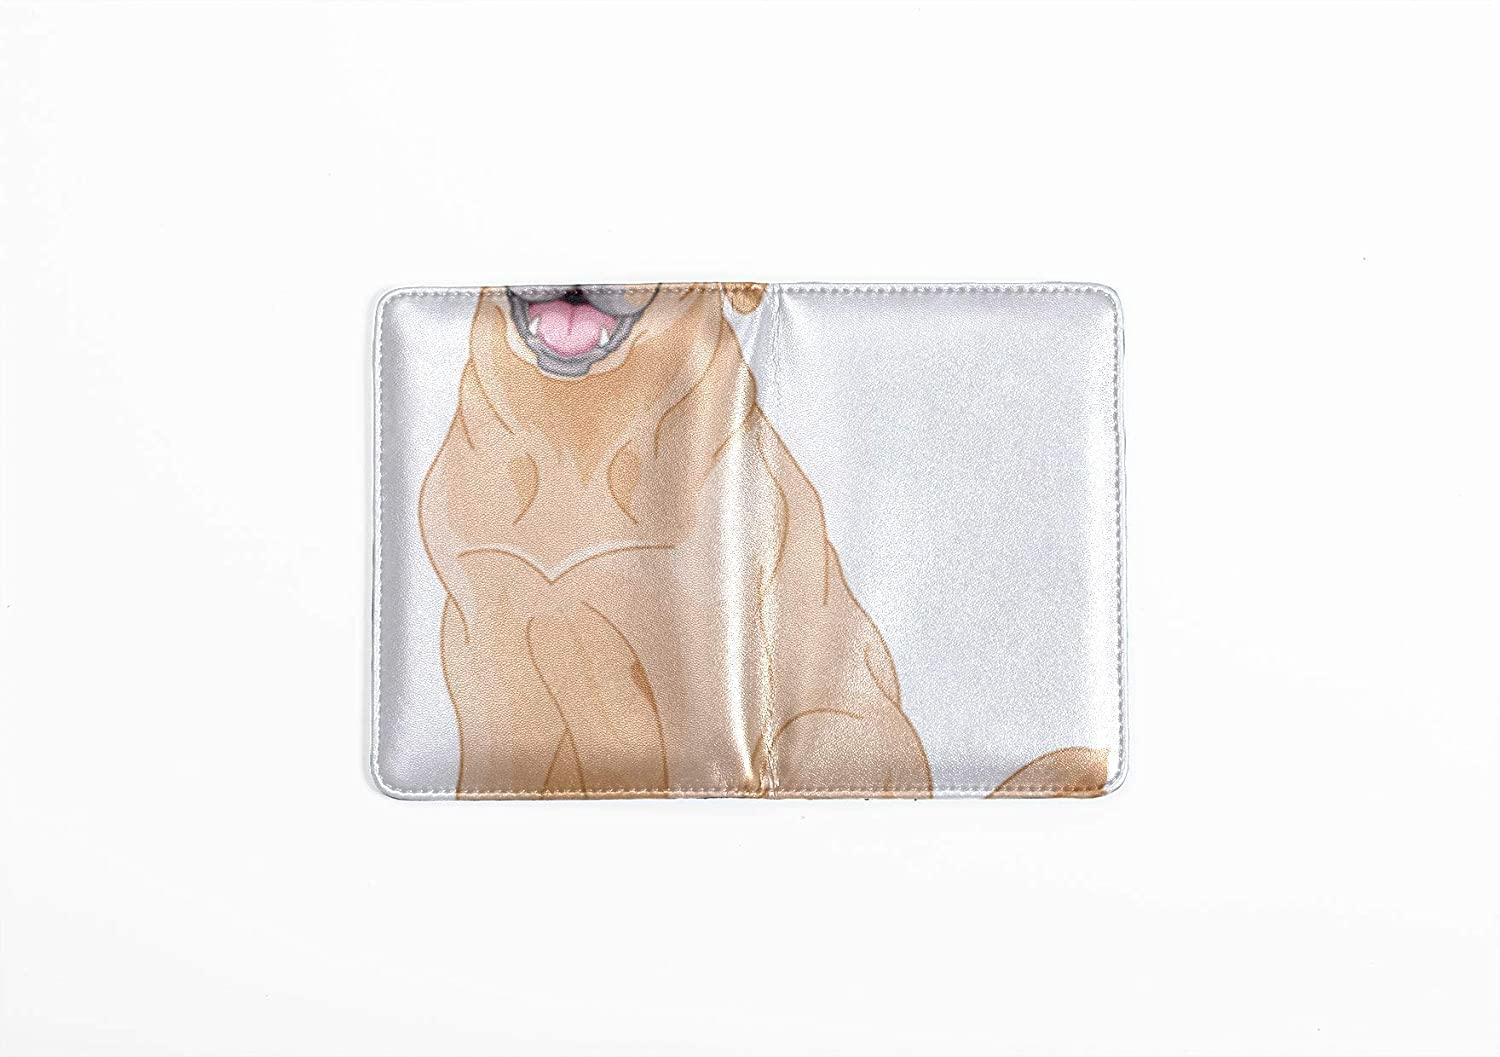 Passport Leather Cover Cute Yellow Smile Pet Golden Retriever Passport Cases For Kids Multi Purpose Print Leotruny Passport Holder Cover Travel Wallets For Unisex 5.51x4.37 Inch